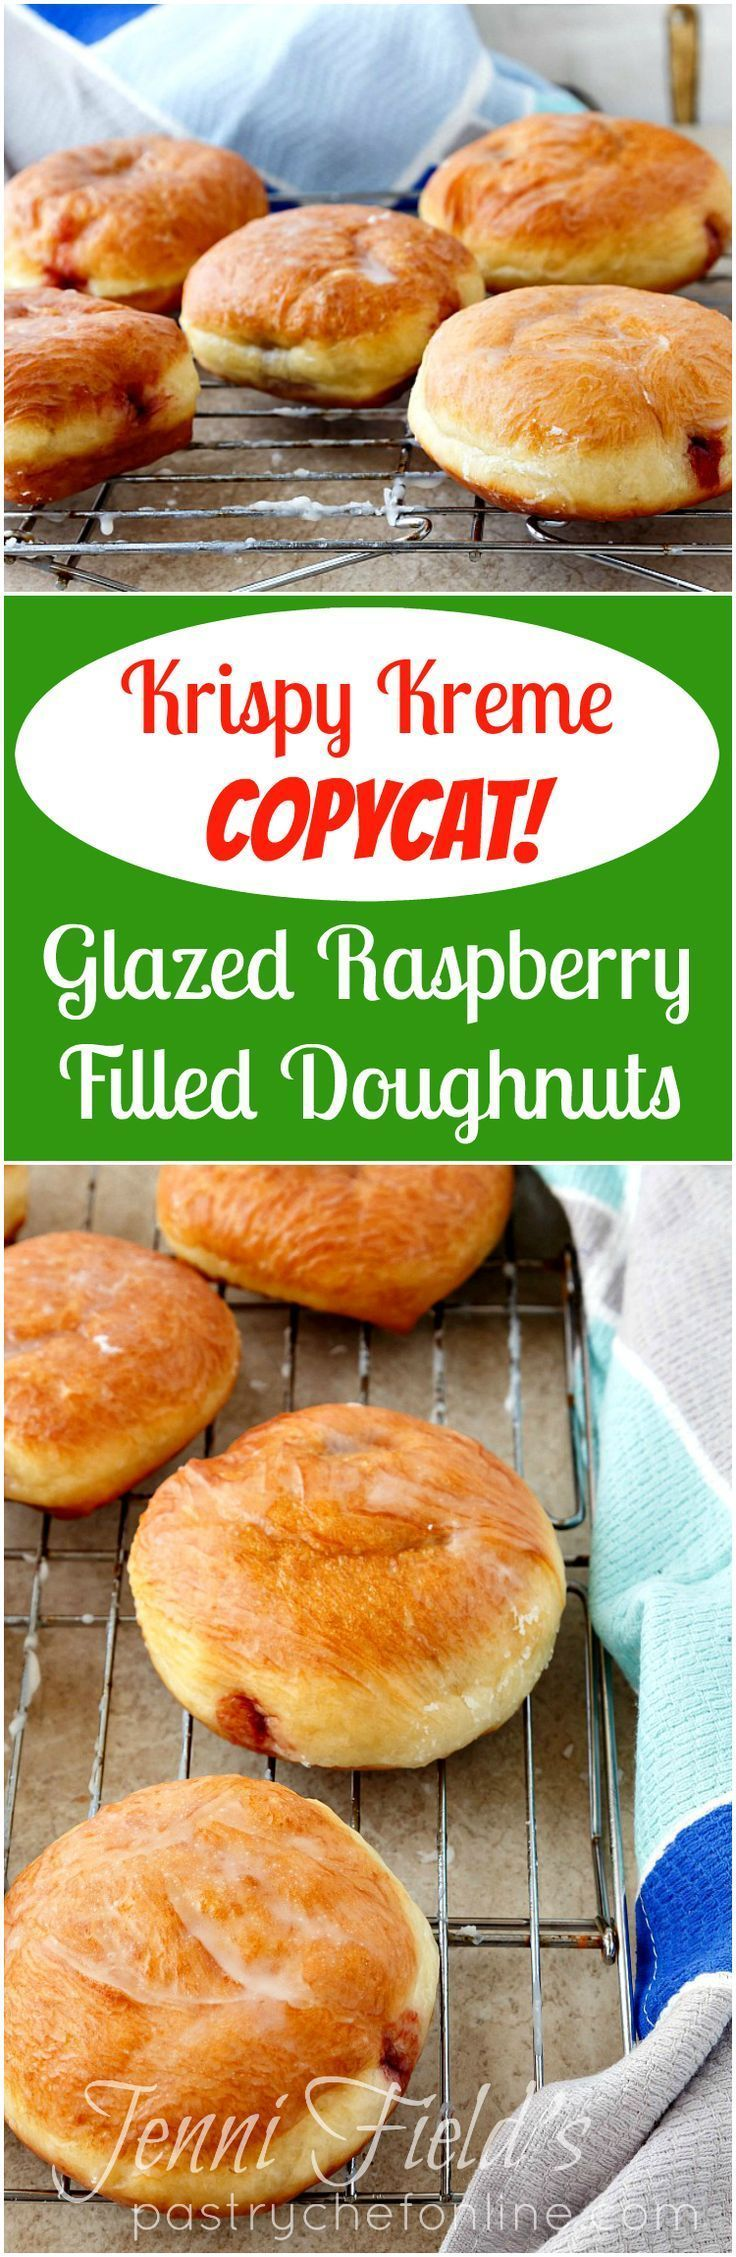 If you love a good Krispy Kreme doughnut, and you are a fan of glazed raspberry filled doughnuts, you are going to love my copycat Krispy Kreme doughnut recipe. Make your own glazed raspberry filled doughnuts at home, including a thin glaze that shatters